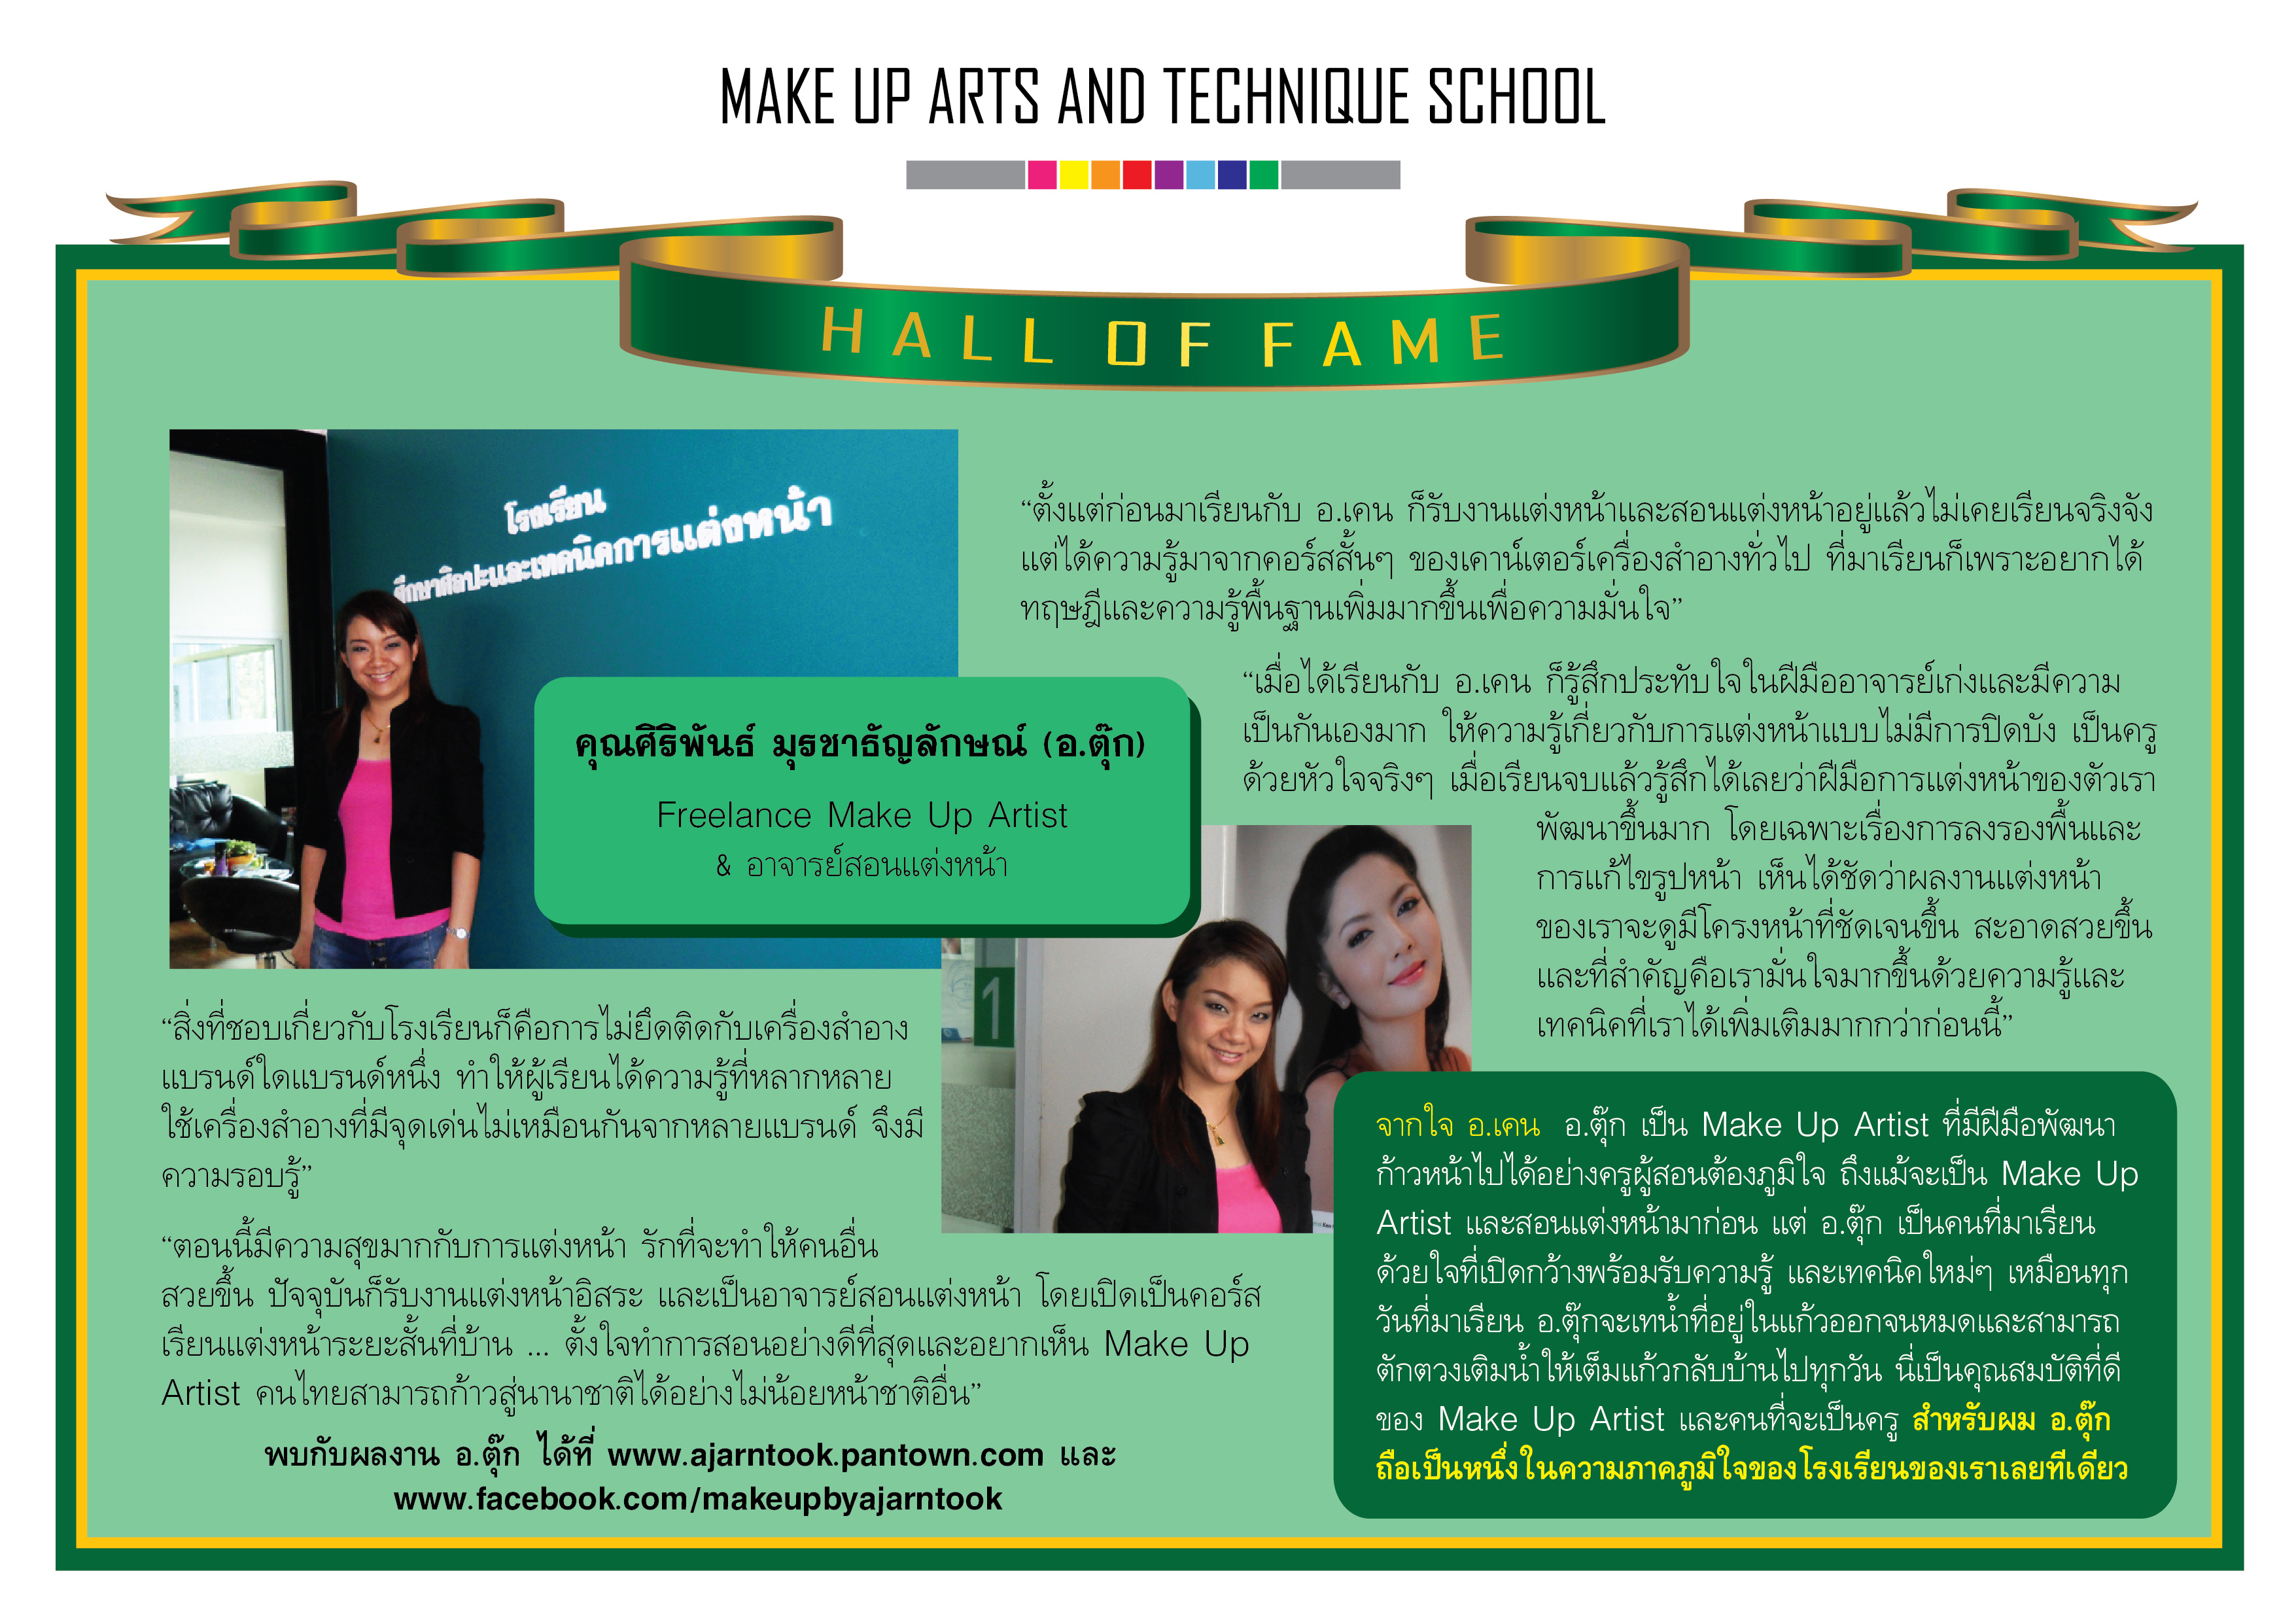 Make Up Arts And Technique School - Hall of Fame - อ.ตุ๊